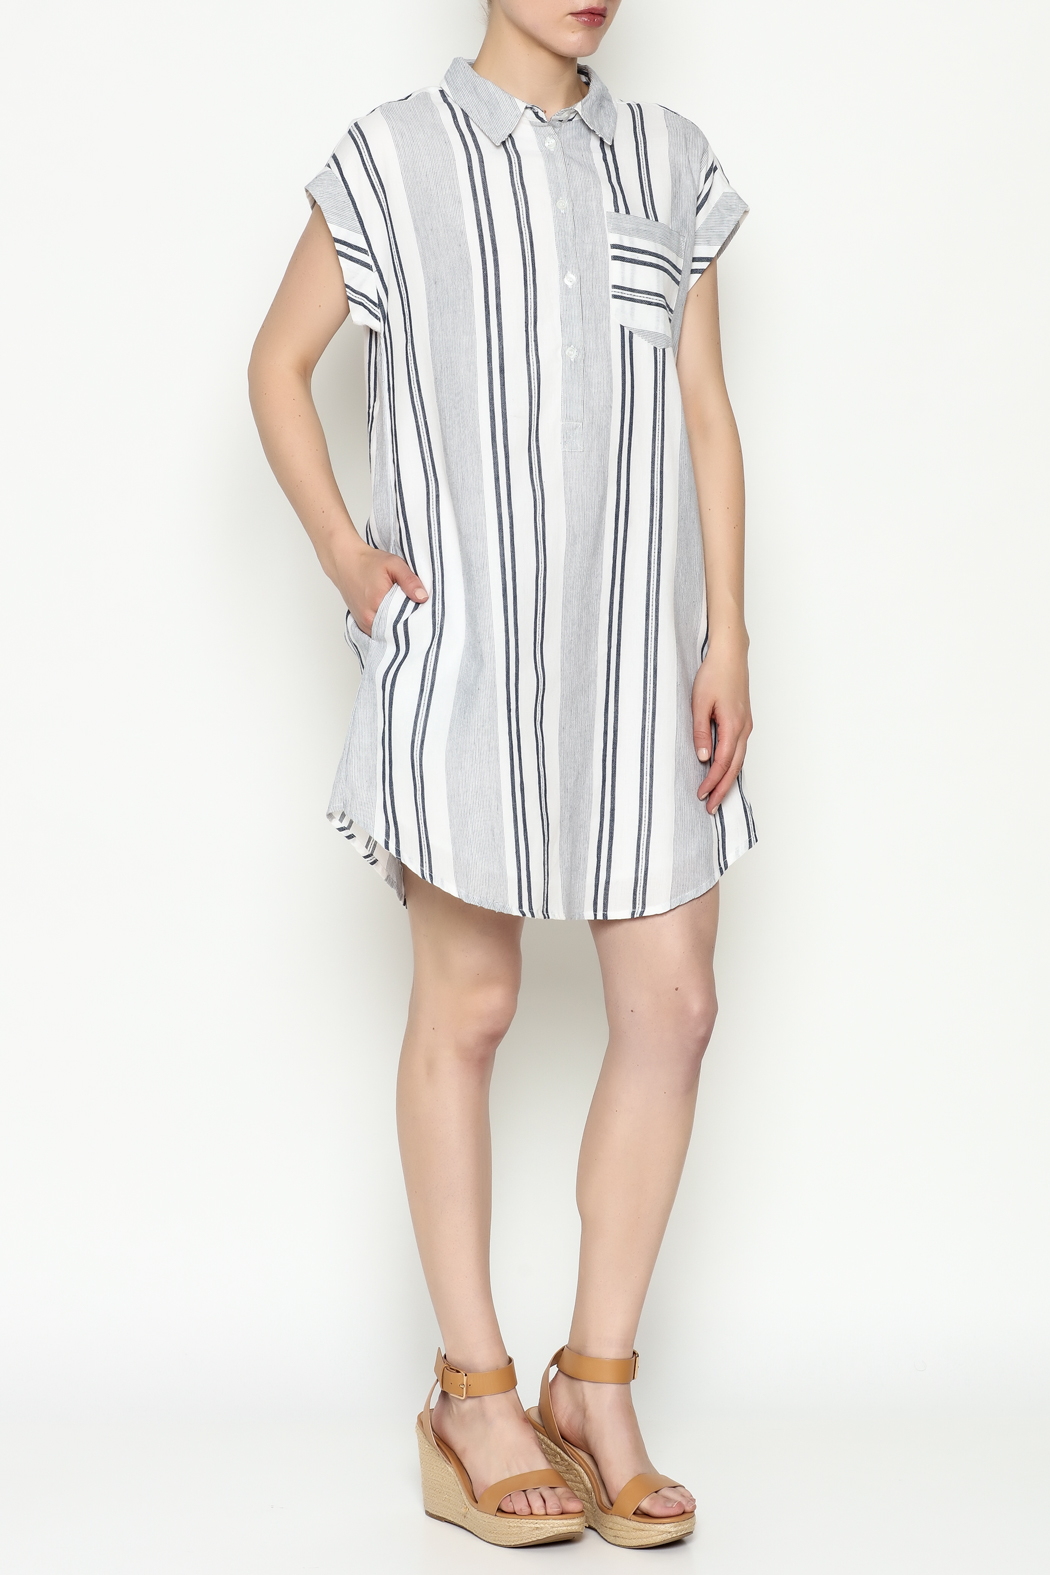 Olive & Oak Multicolored Stripe Dress - Side Cropped Image